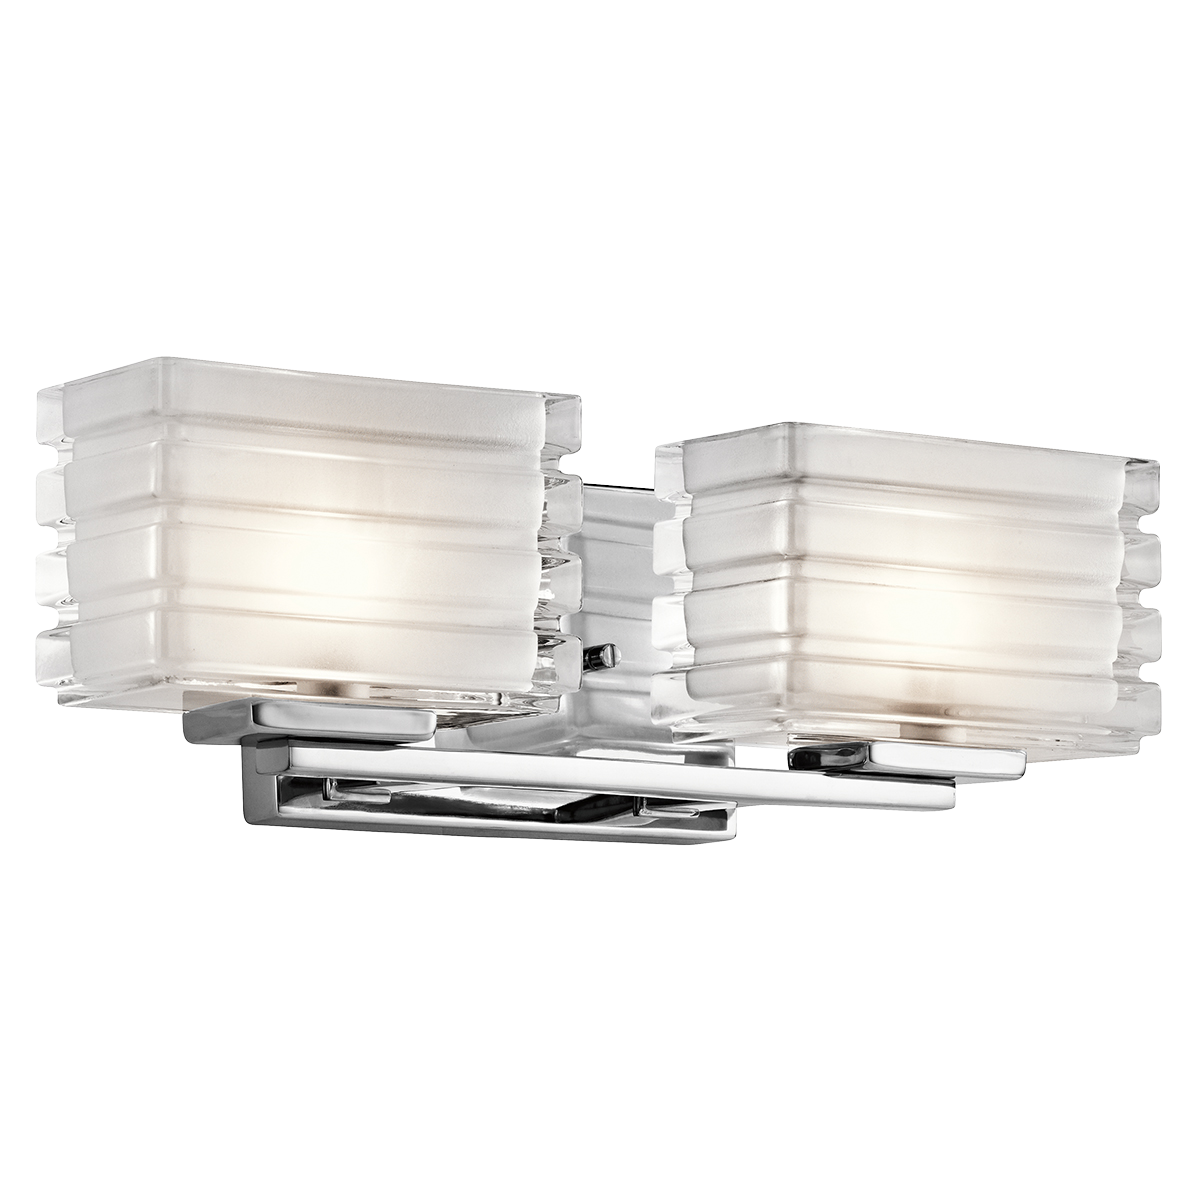 Chic Bazely 2 Light Halogen Wall Sconce CH CH By Cardello Lighting And Decor For Home Ideas